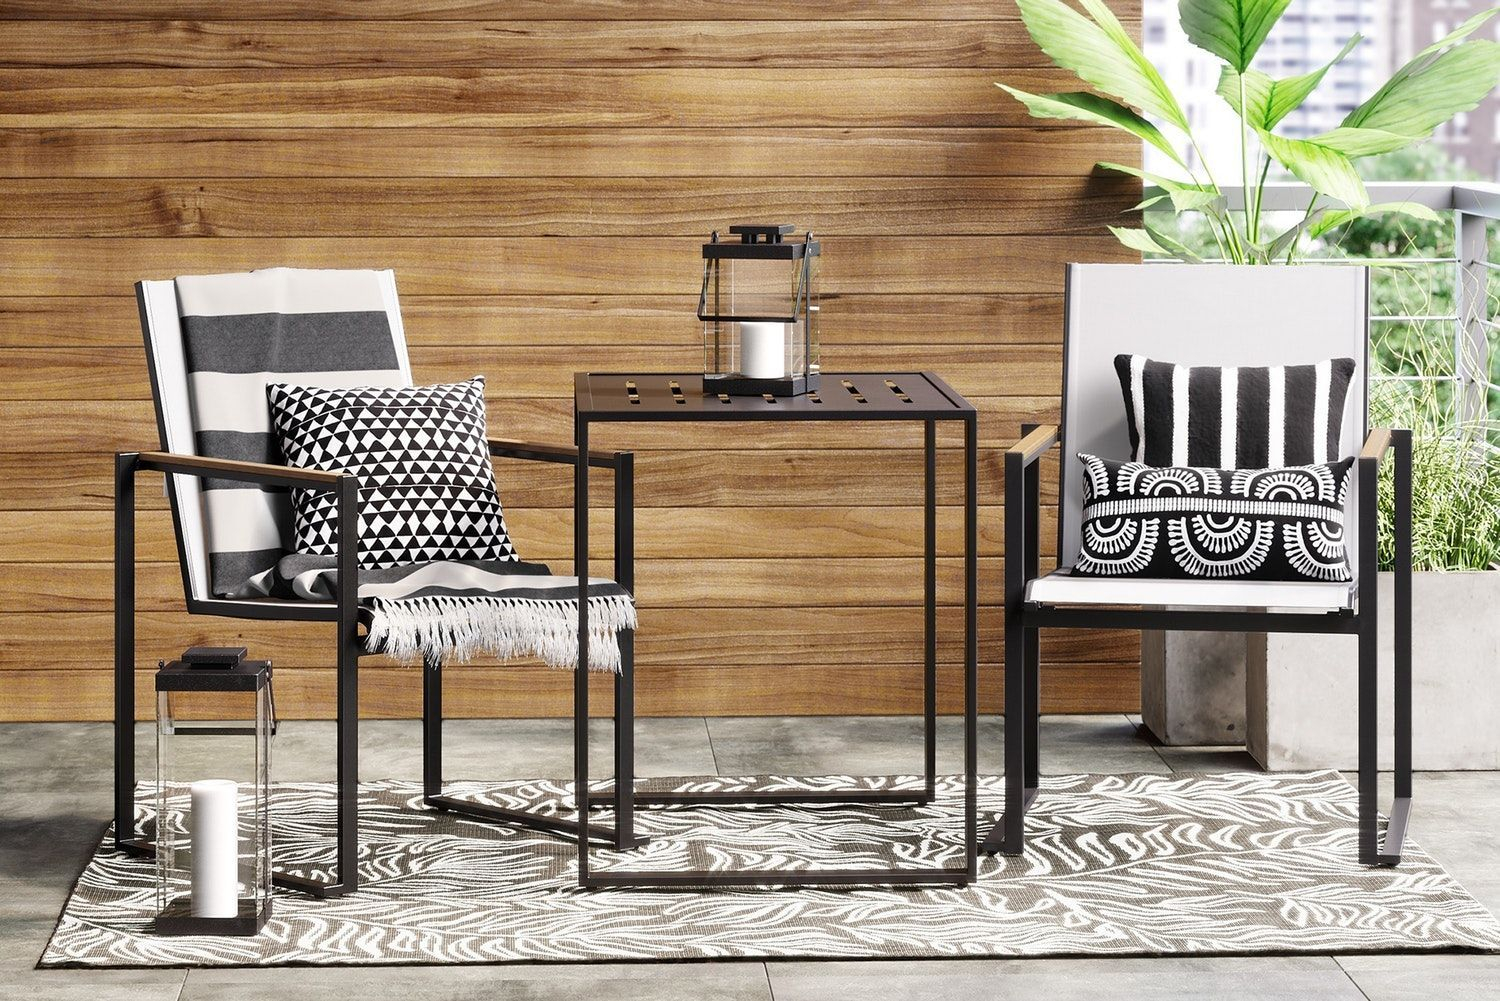 Minimalist furniture for your outdoor area 20